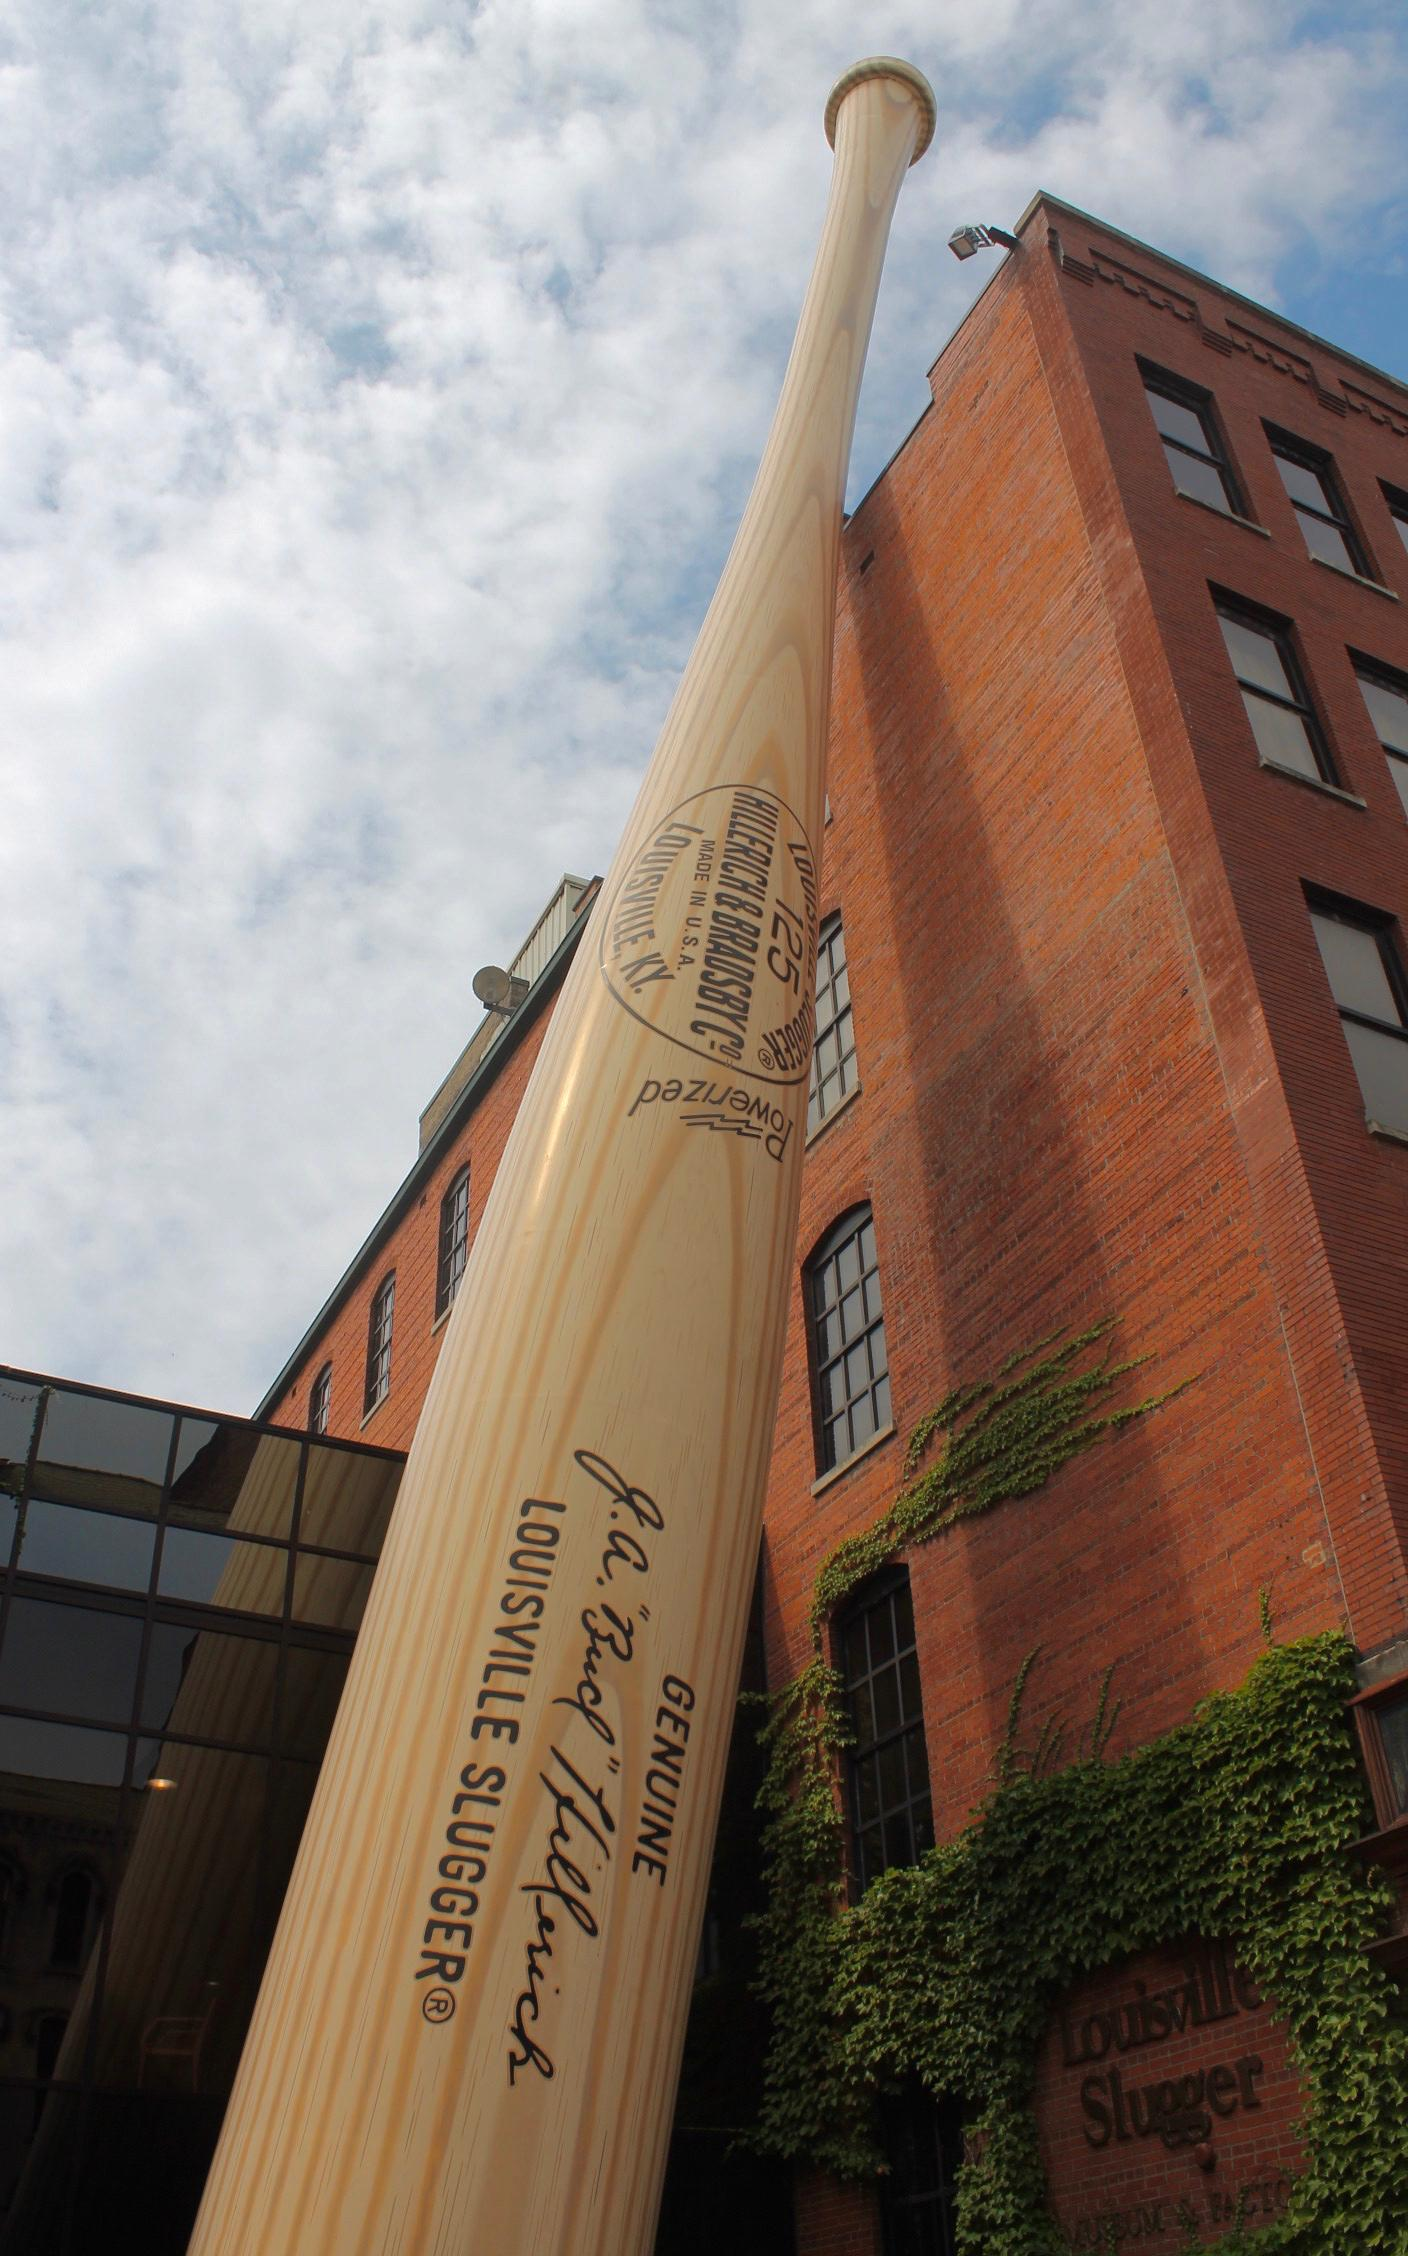 The Big Bat outside of the museum is the largest baseball bat in the world. It weighs 68,000 lbs and stands 120 feet tall. / Image: Rose Brewington // Published: 8.15.17